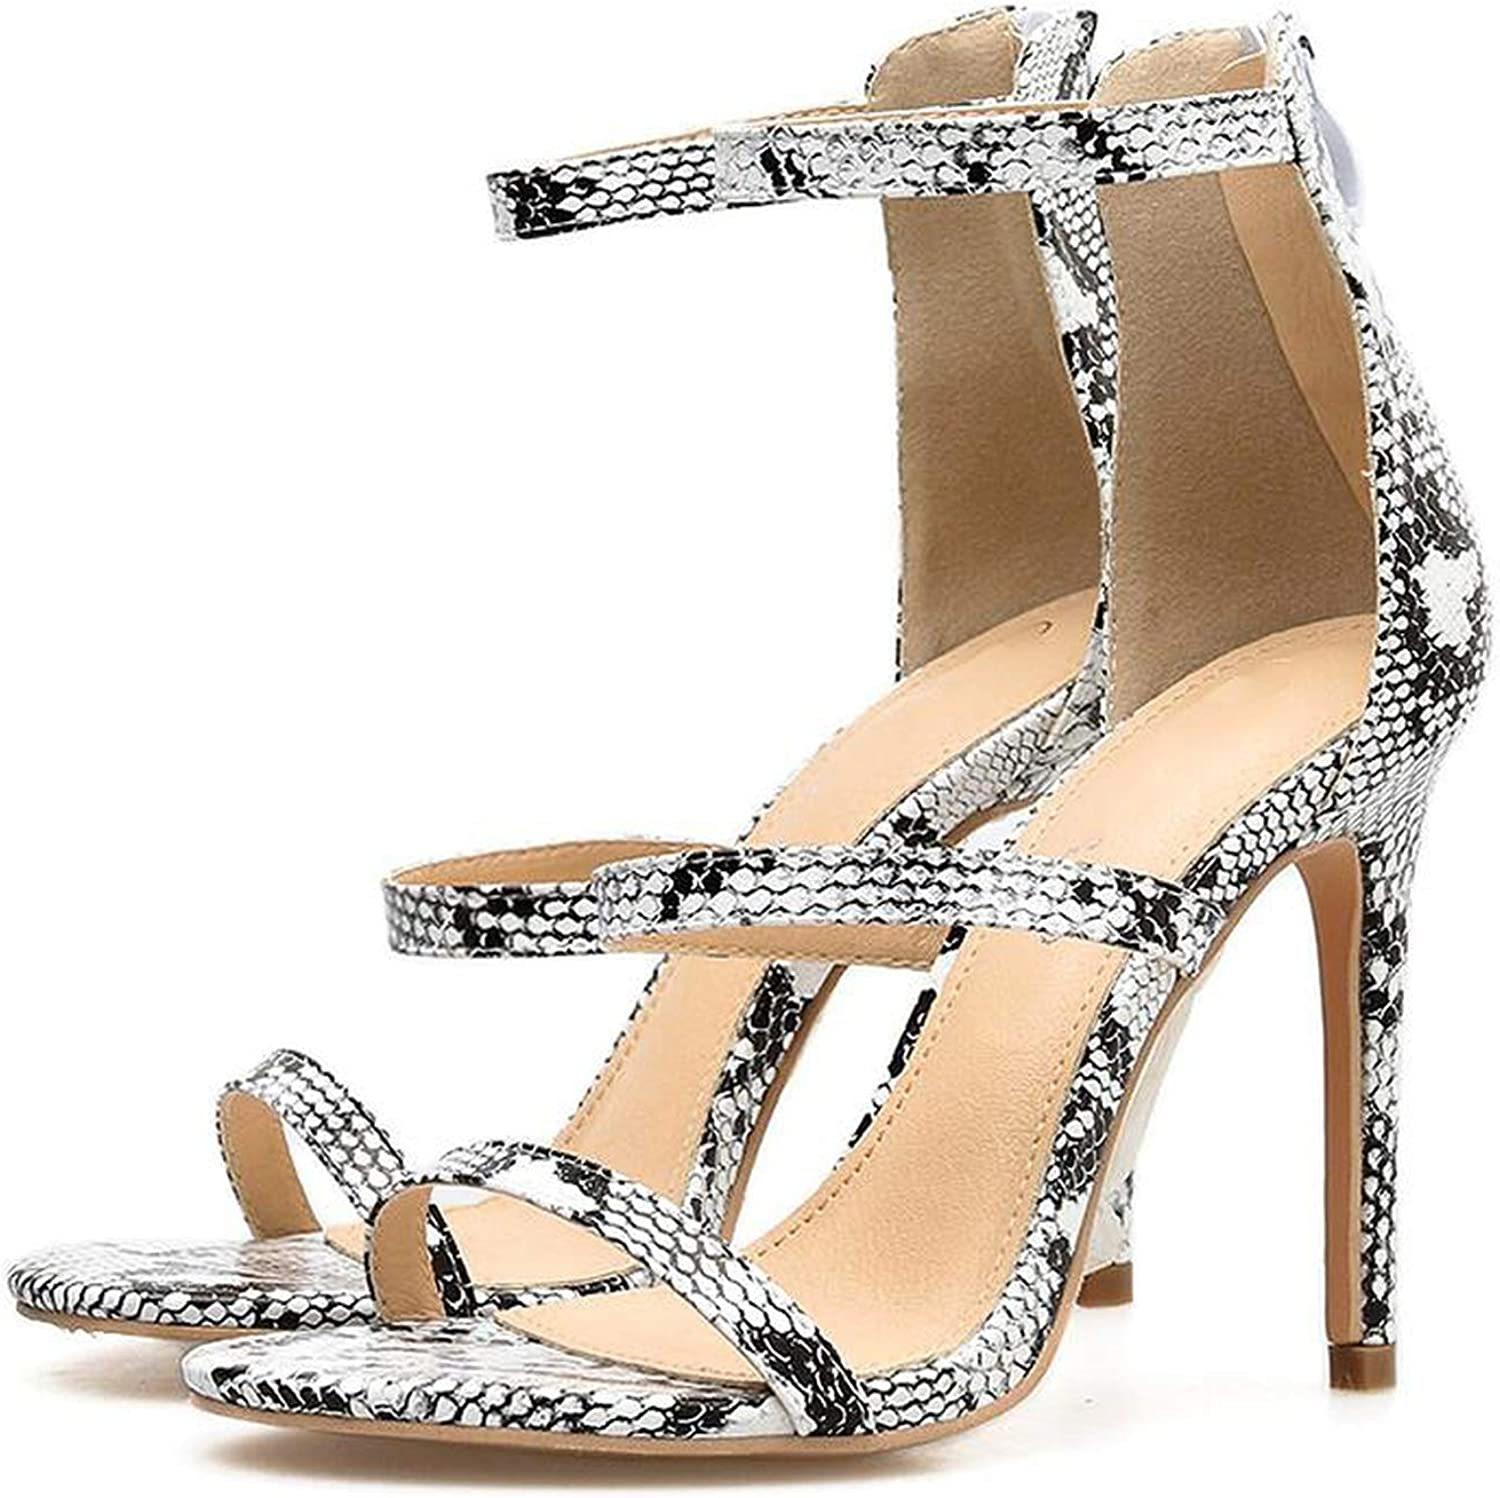 Sexy Leopard Print Gladiator Sandals Thin High Heels Sandals Open Toe Pumps shoes,Serpentine,9